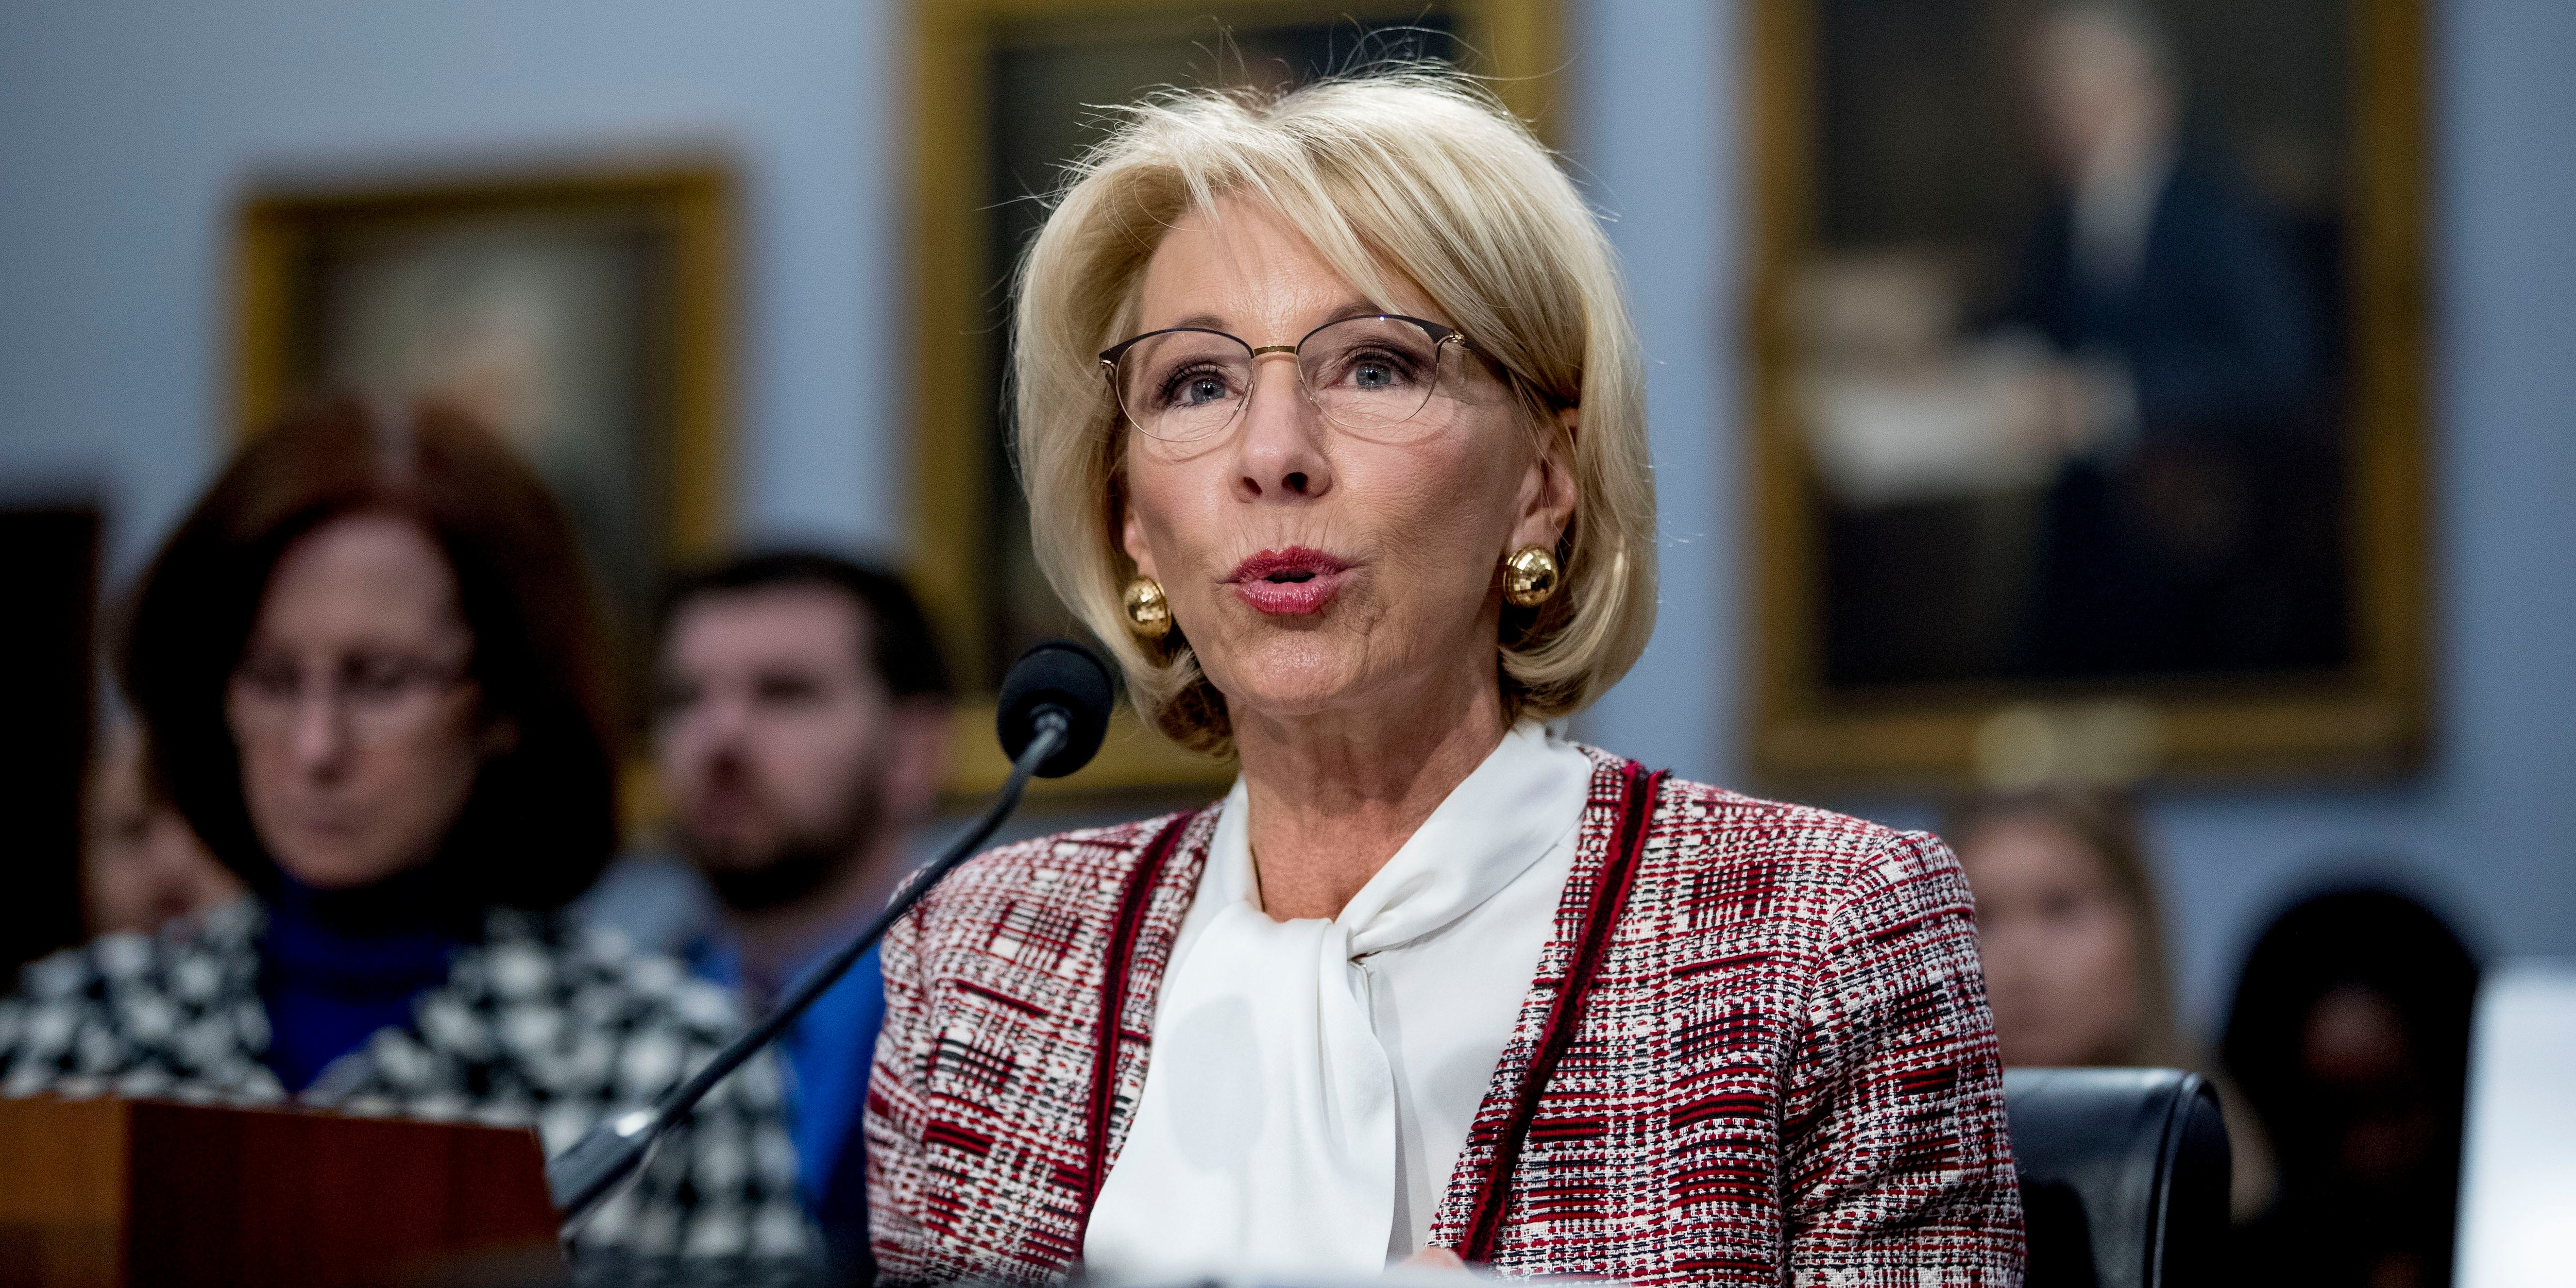 Special Olympics cuts come under fire as DeVos faces budget questions